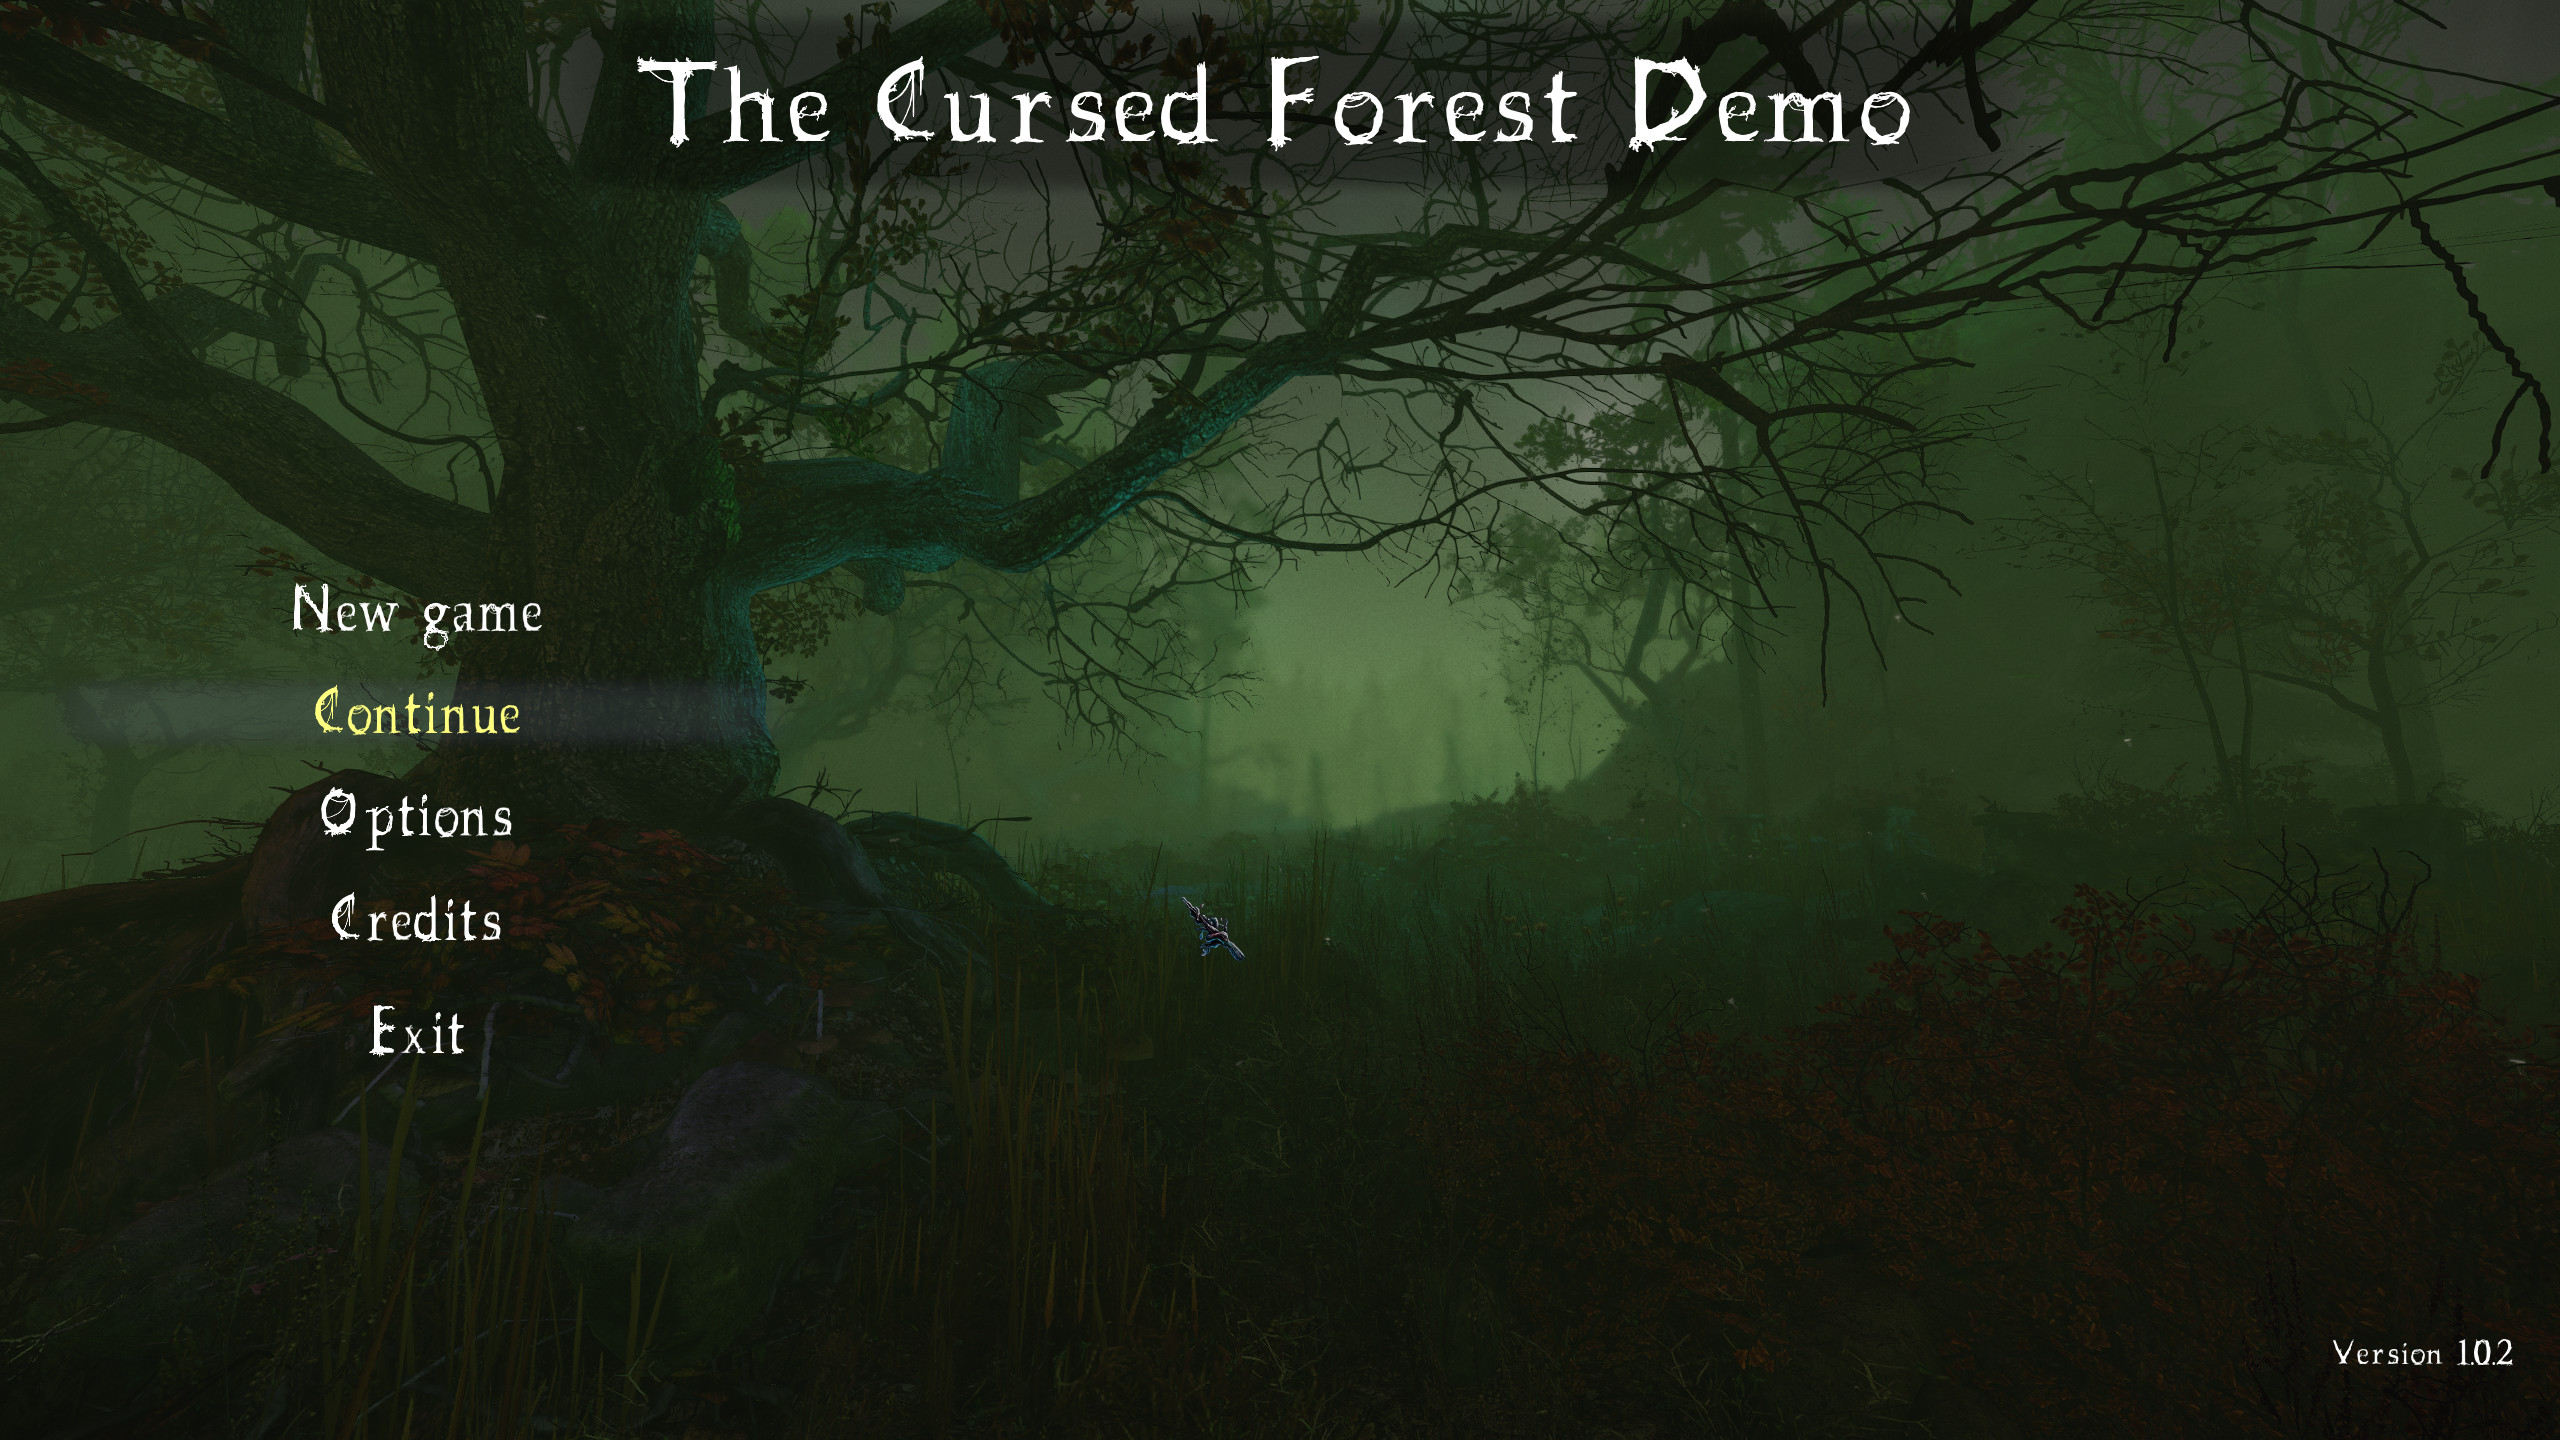 The Cursed Forest demo MM 2k